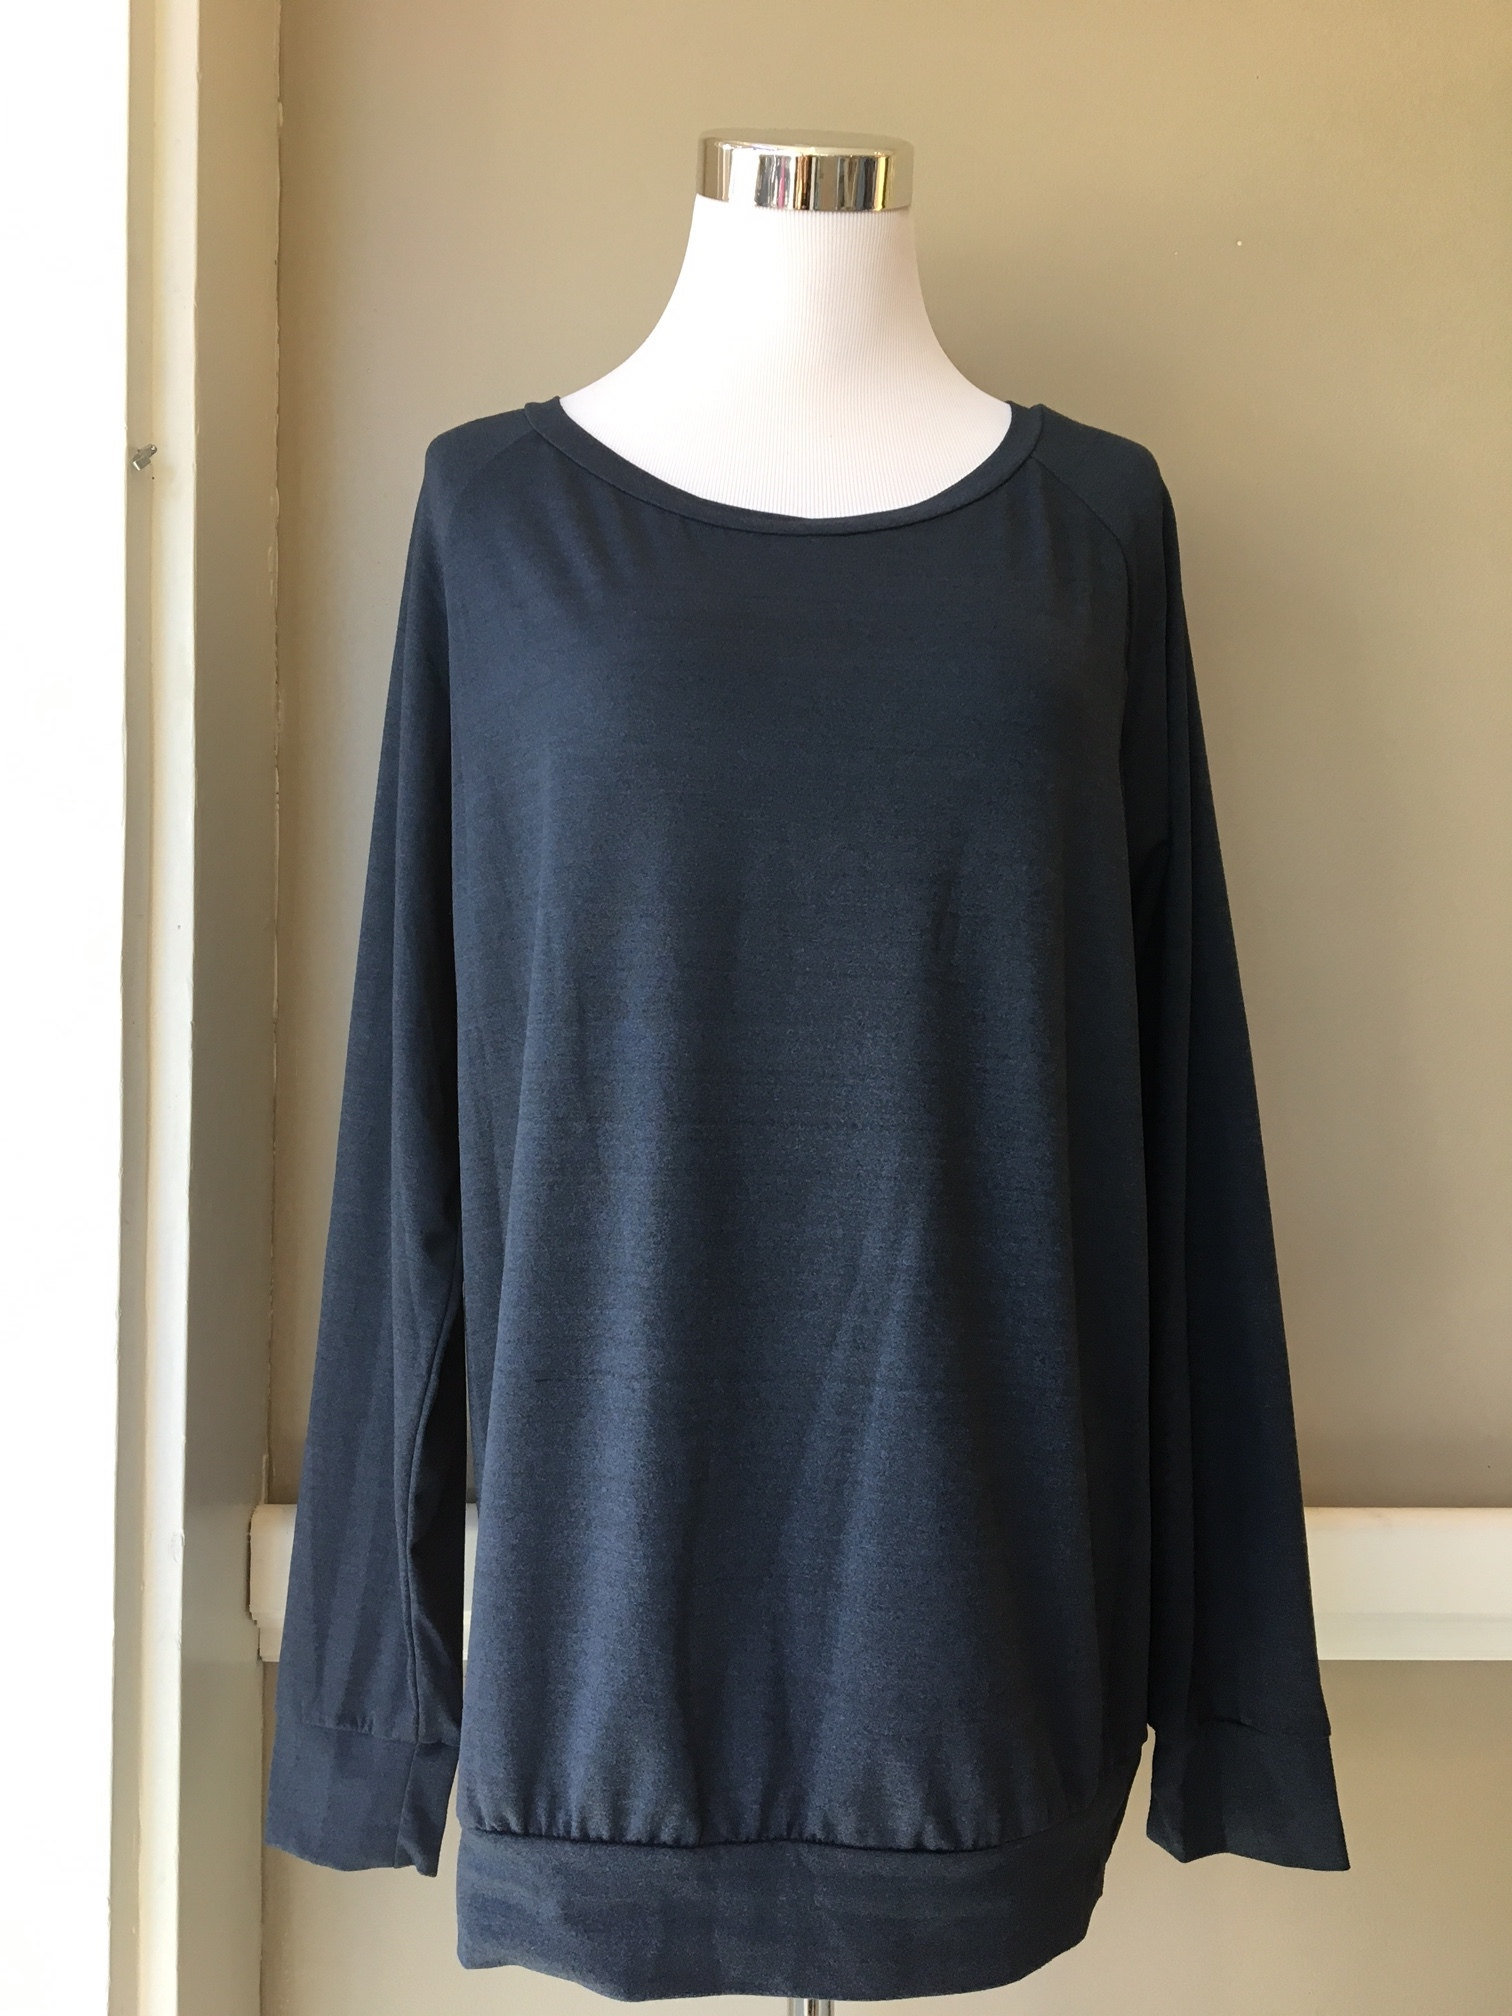 Long Sleeve Basic ($32, variety of colors and lengths)